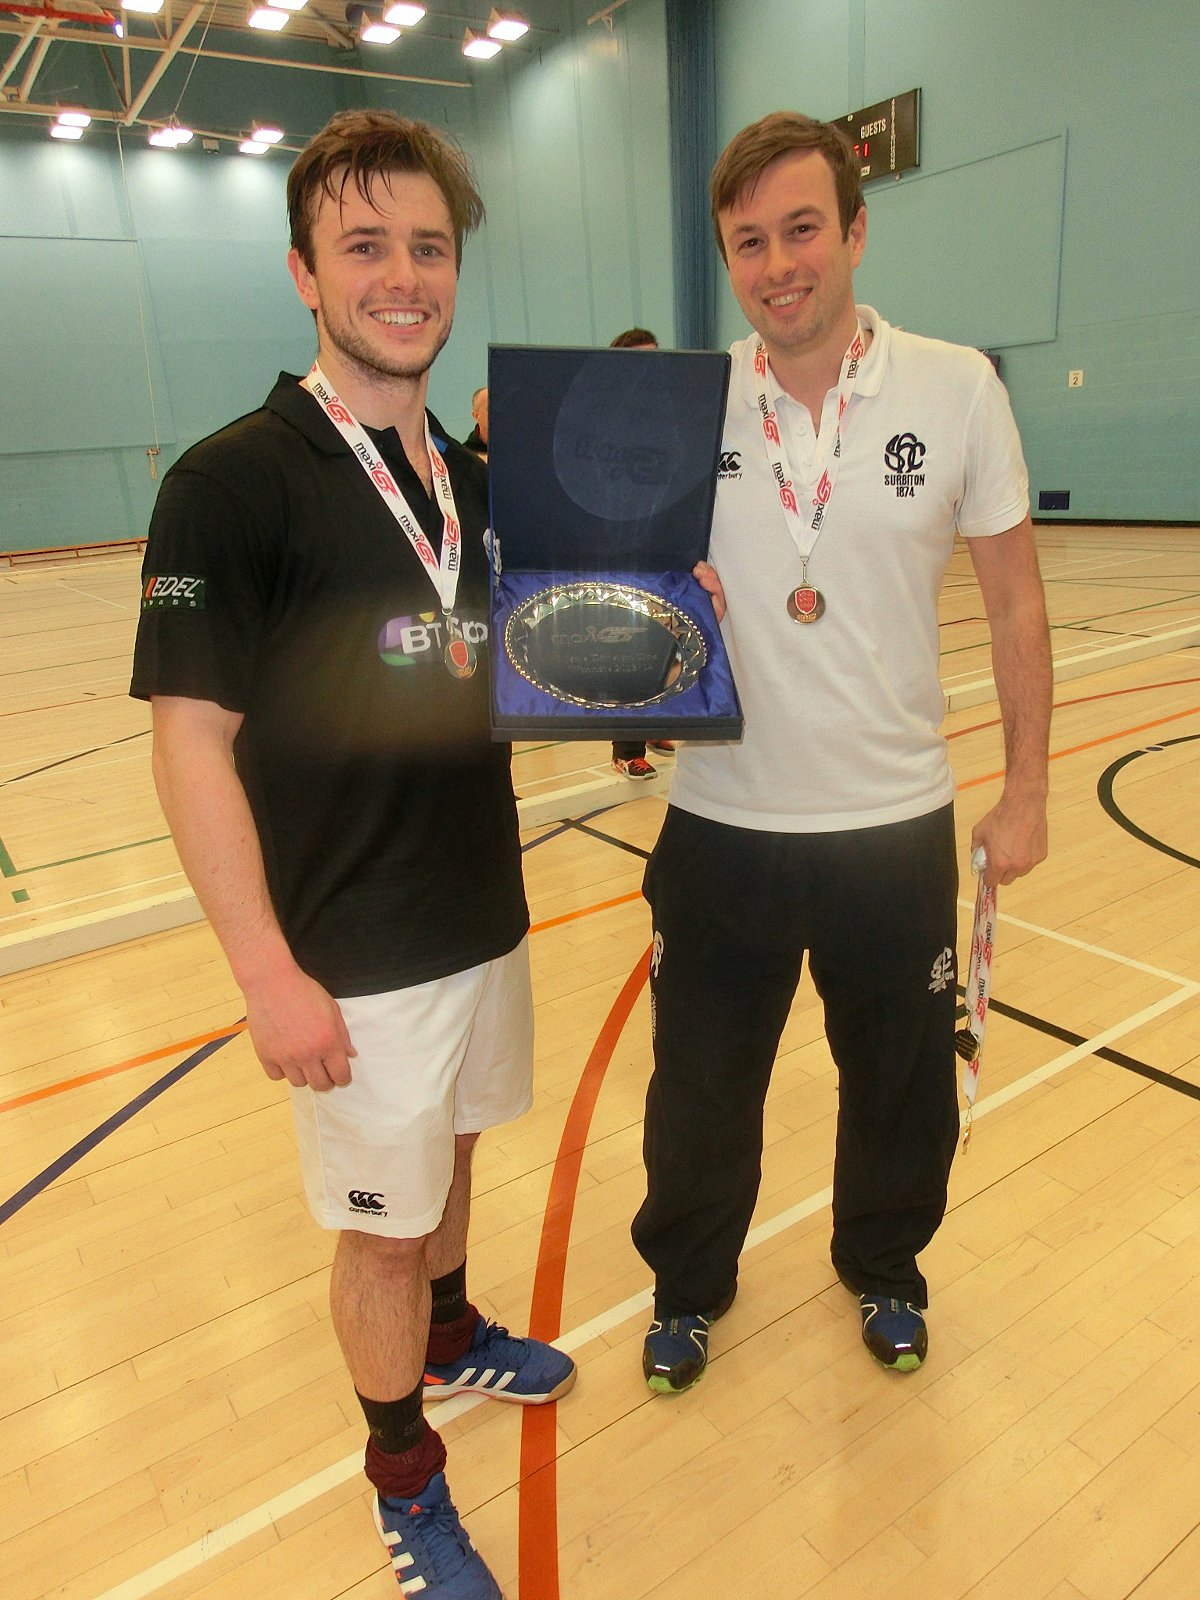 All smiles: Guest star Rufus McNaught-Barrington, left, with the Division One crown and manager James Lloyd 	Sean Cotter